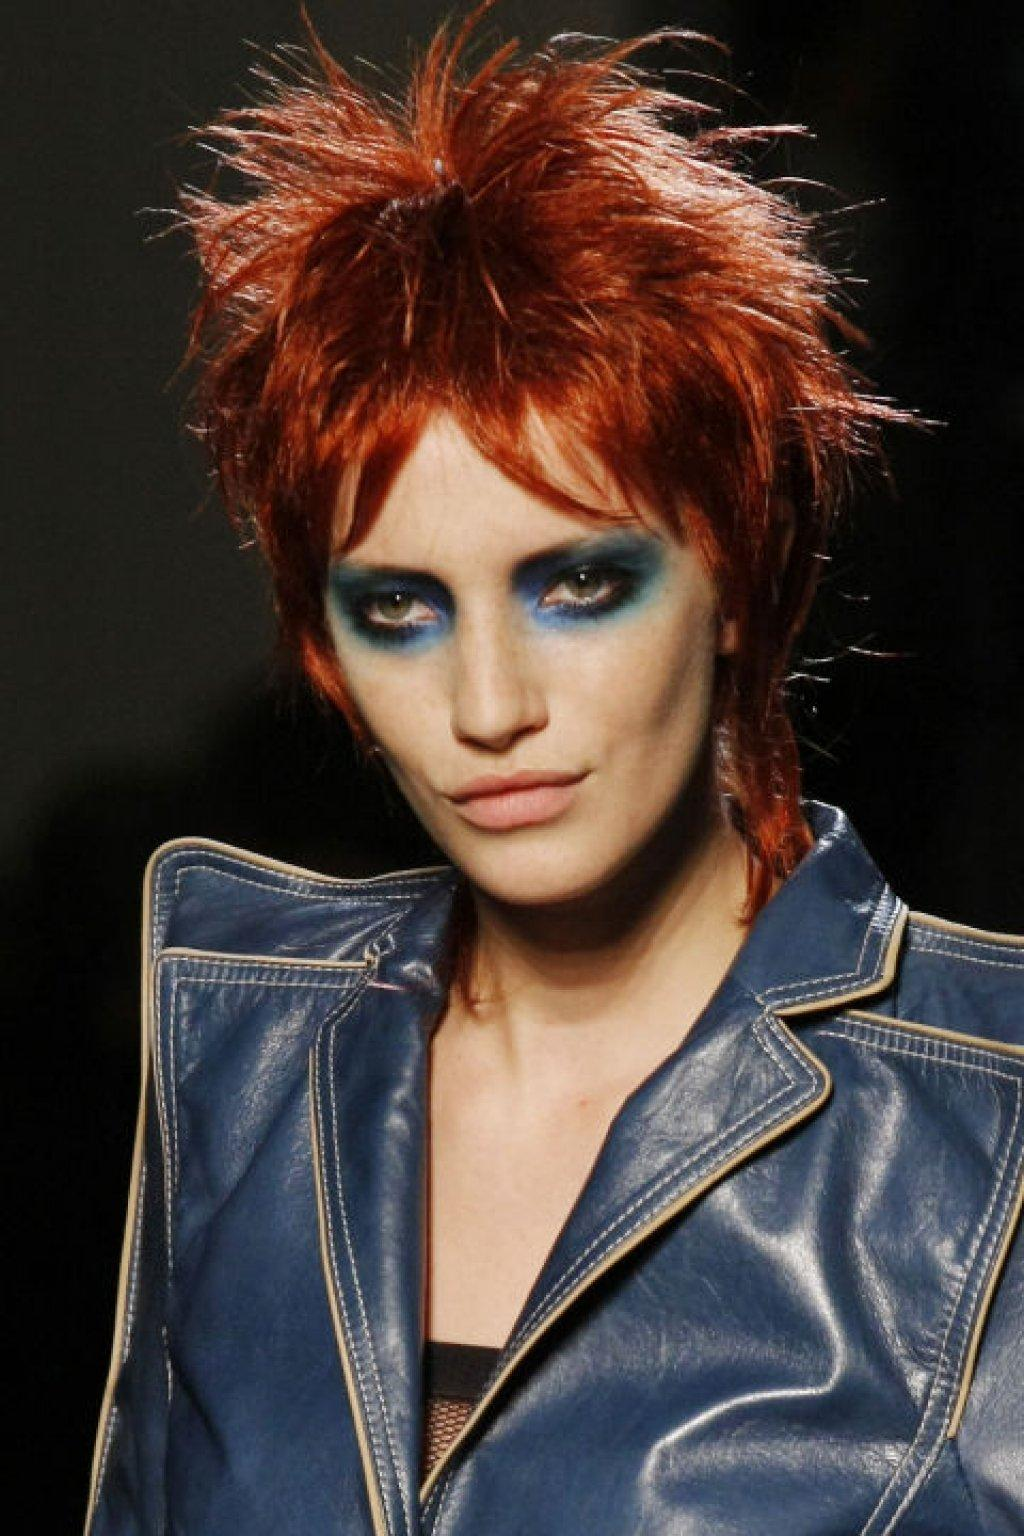 hbz-david-bowie-inspired-runway-gaultier-spring-2011-beauty-ap-images